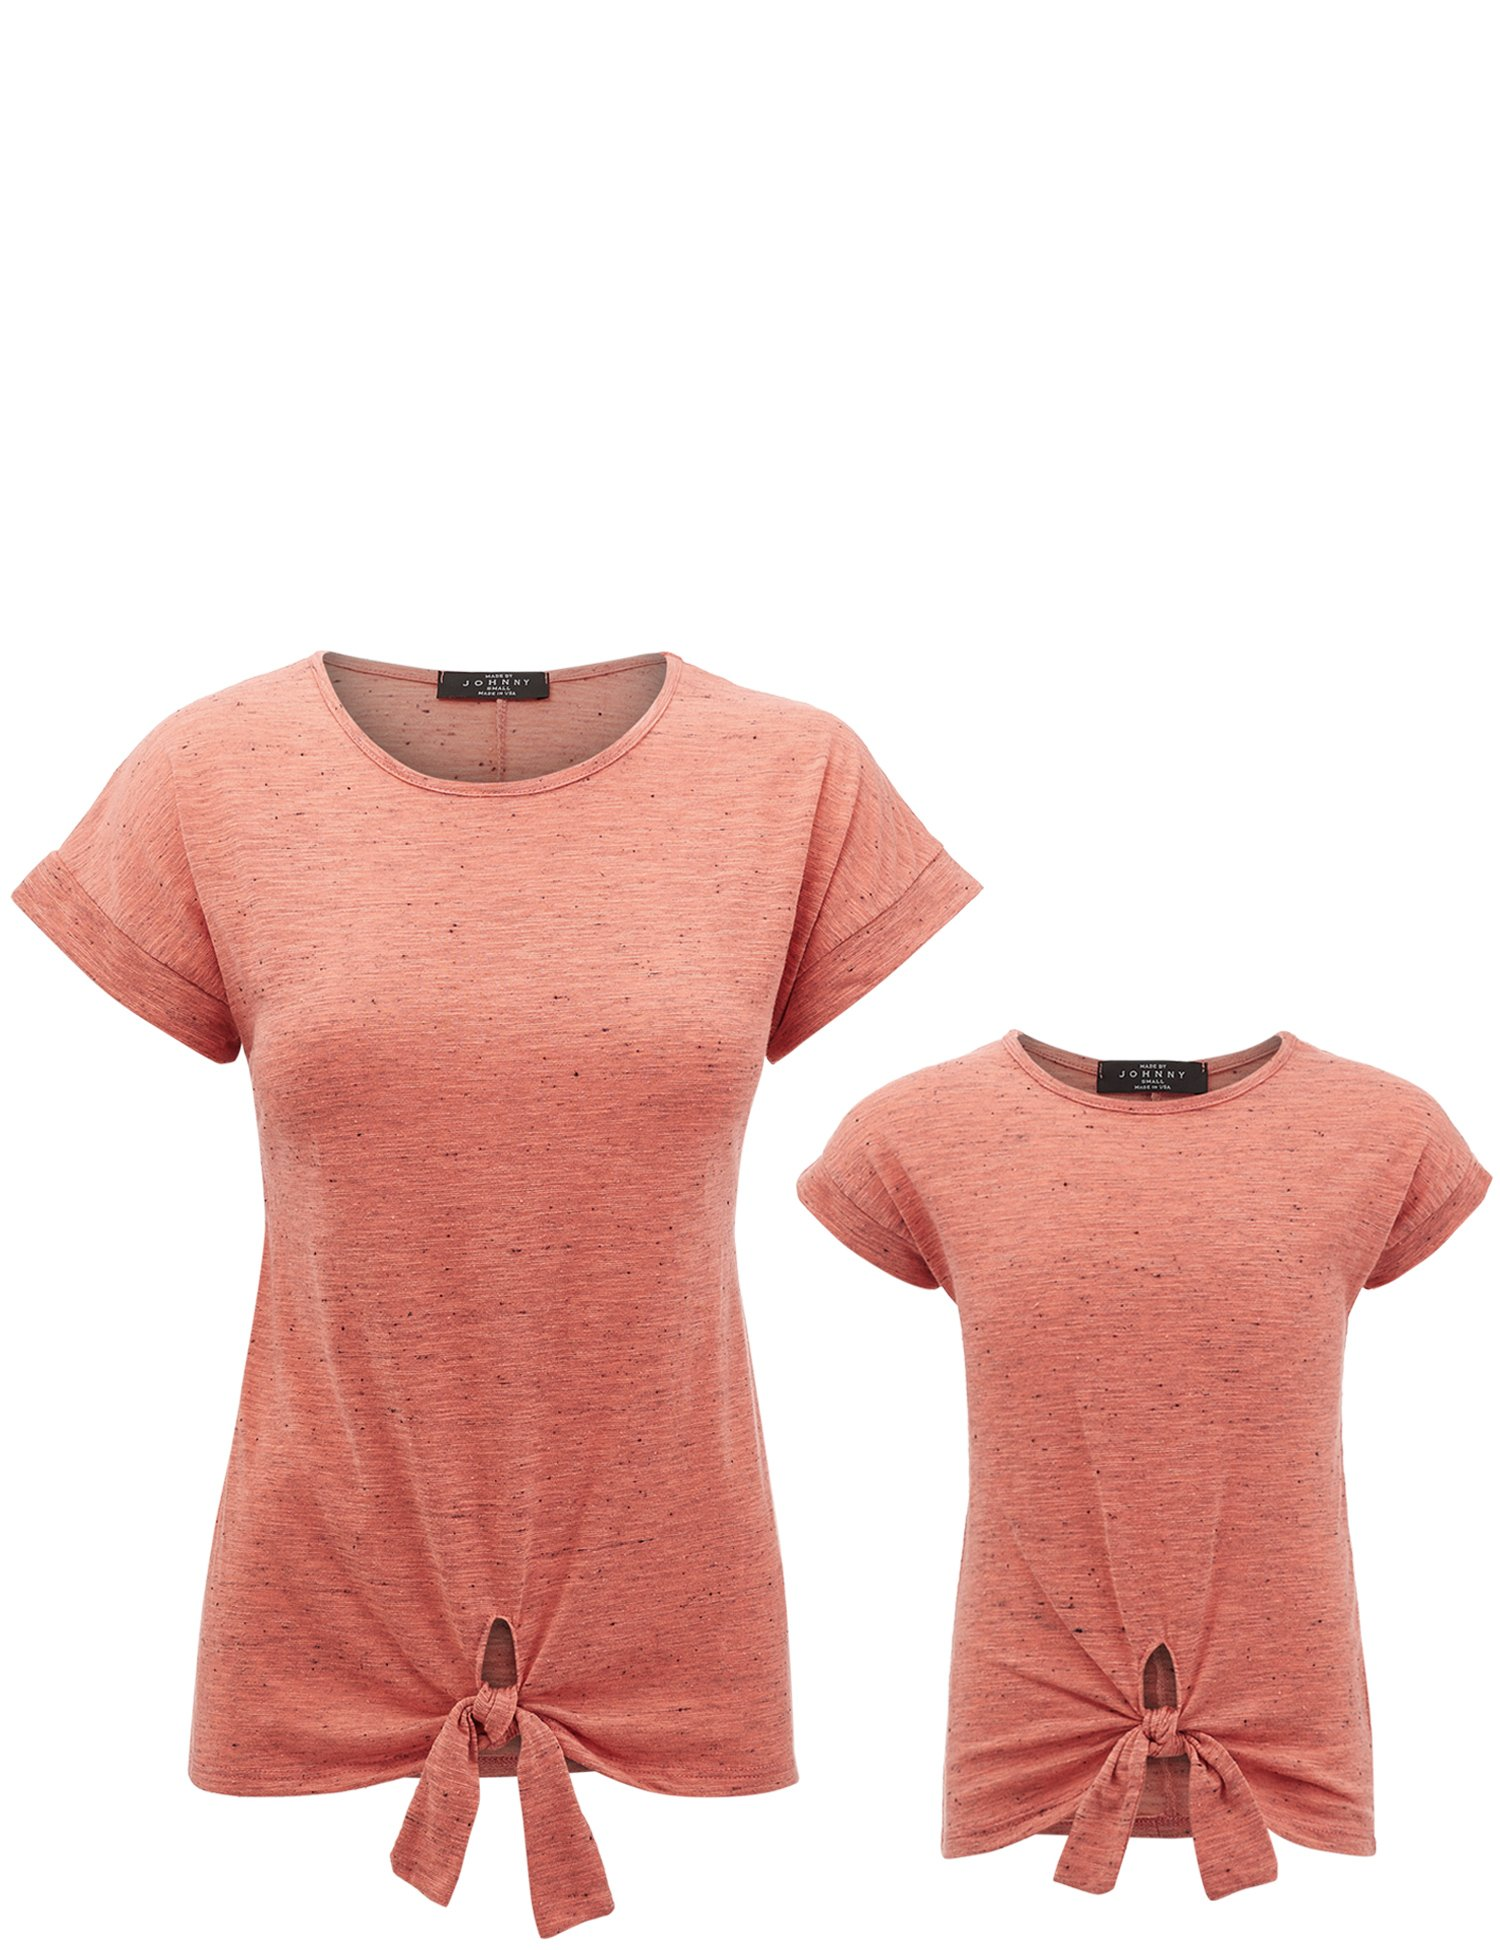 MBJ Kids PT1512 Mommy and Me Round Neck Short Sleeve Dolman Top With Bow M Orange